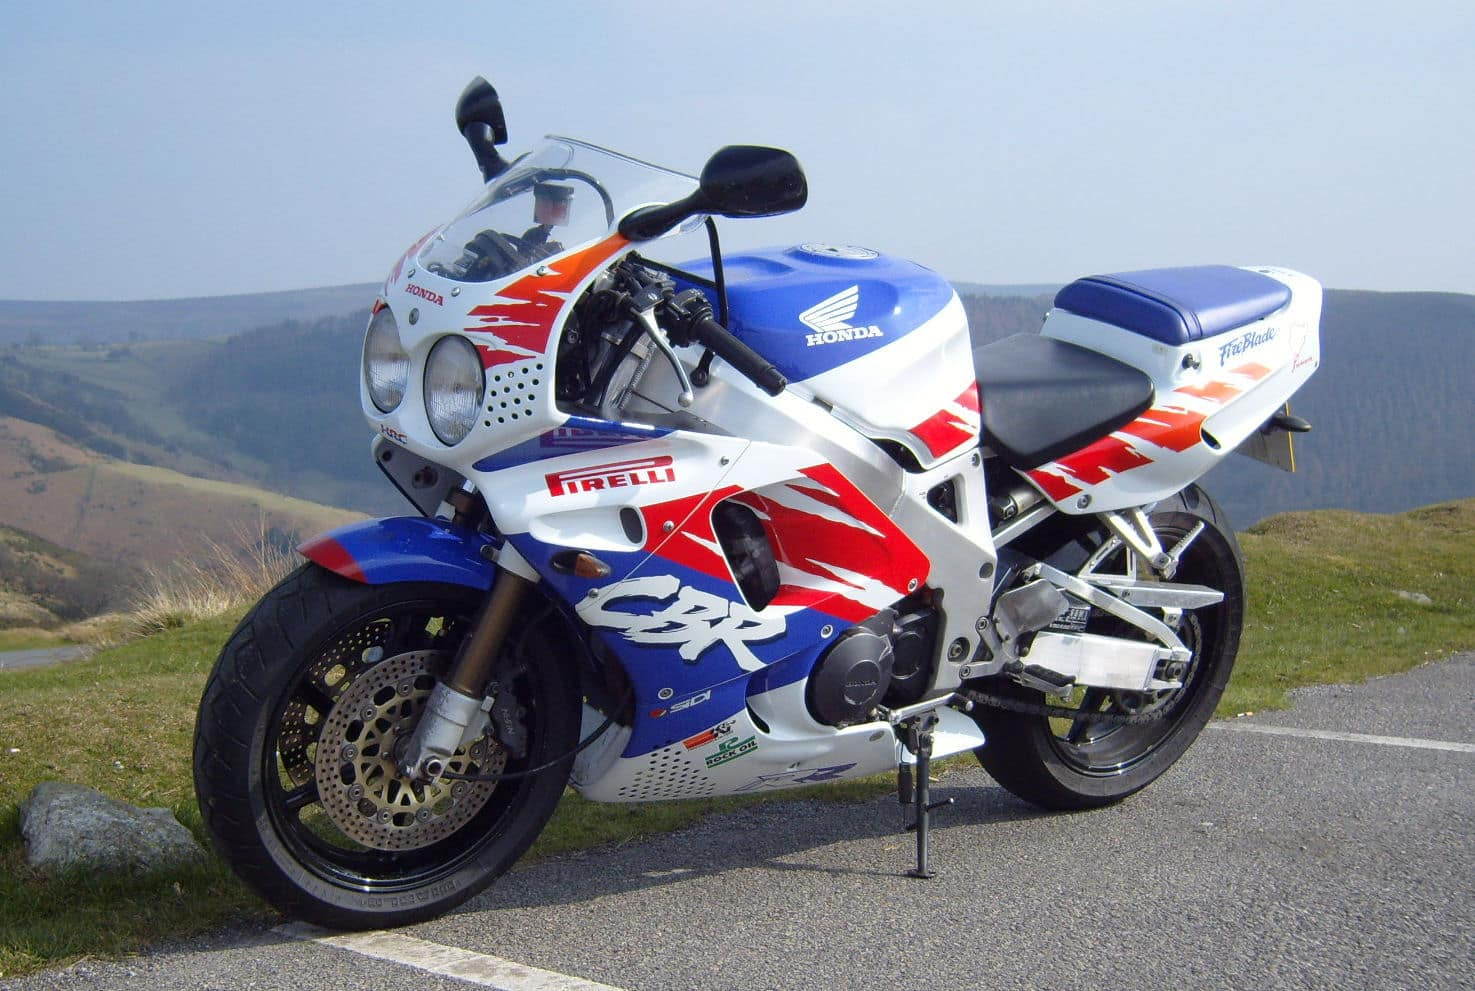 Original Honda CBR900RR FireBlade with round headlights, part of this buyers guide to the FireBlade